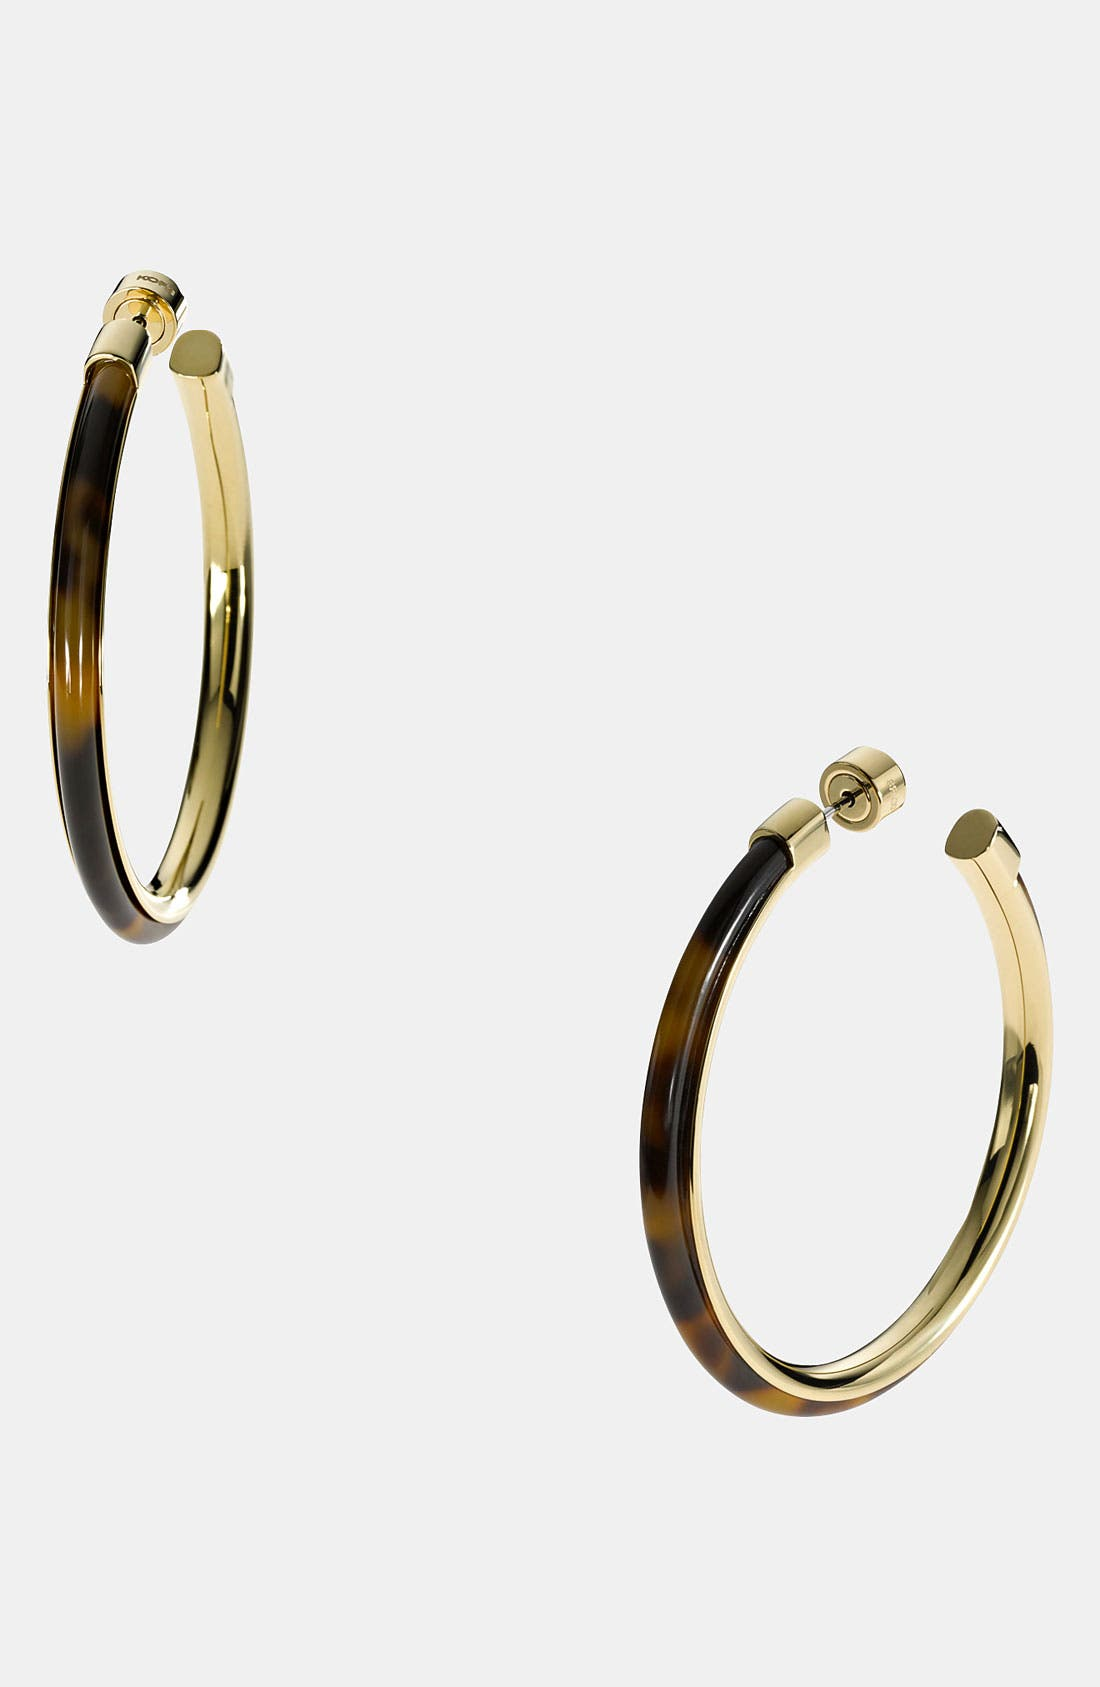 Main Image - Michael Kors 'Heritage' Large Hoop Earrings